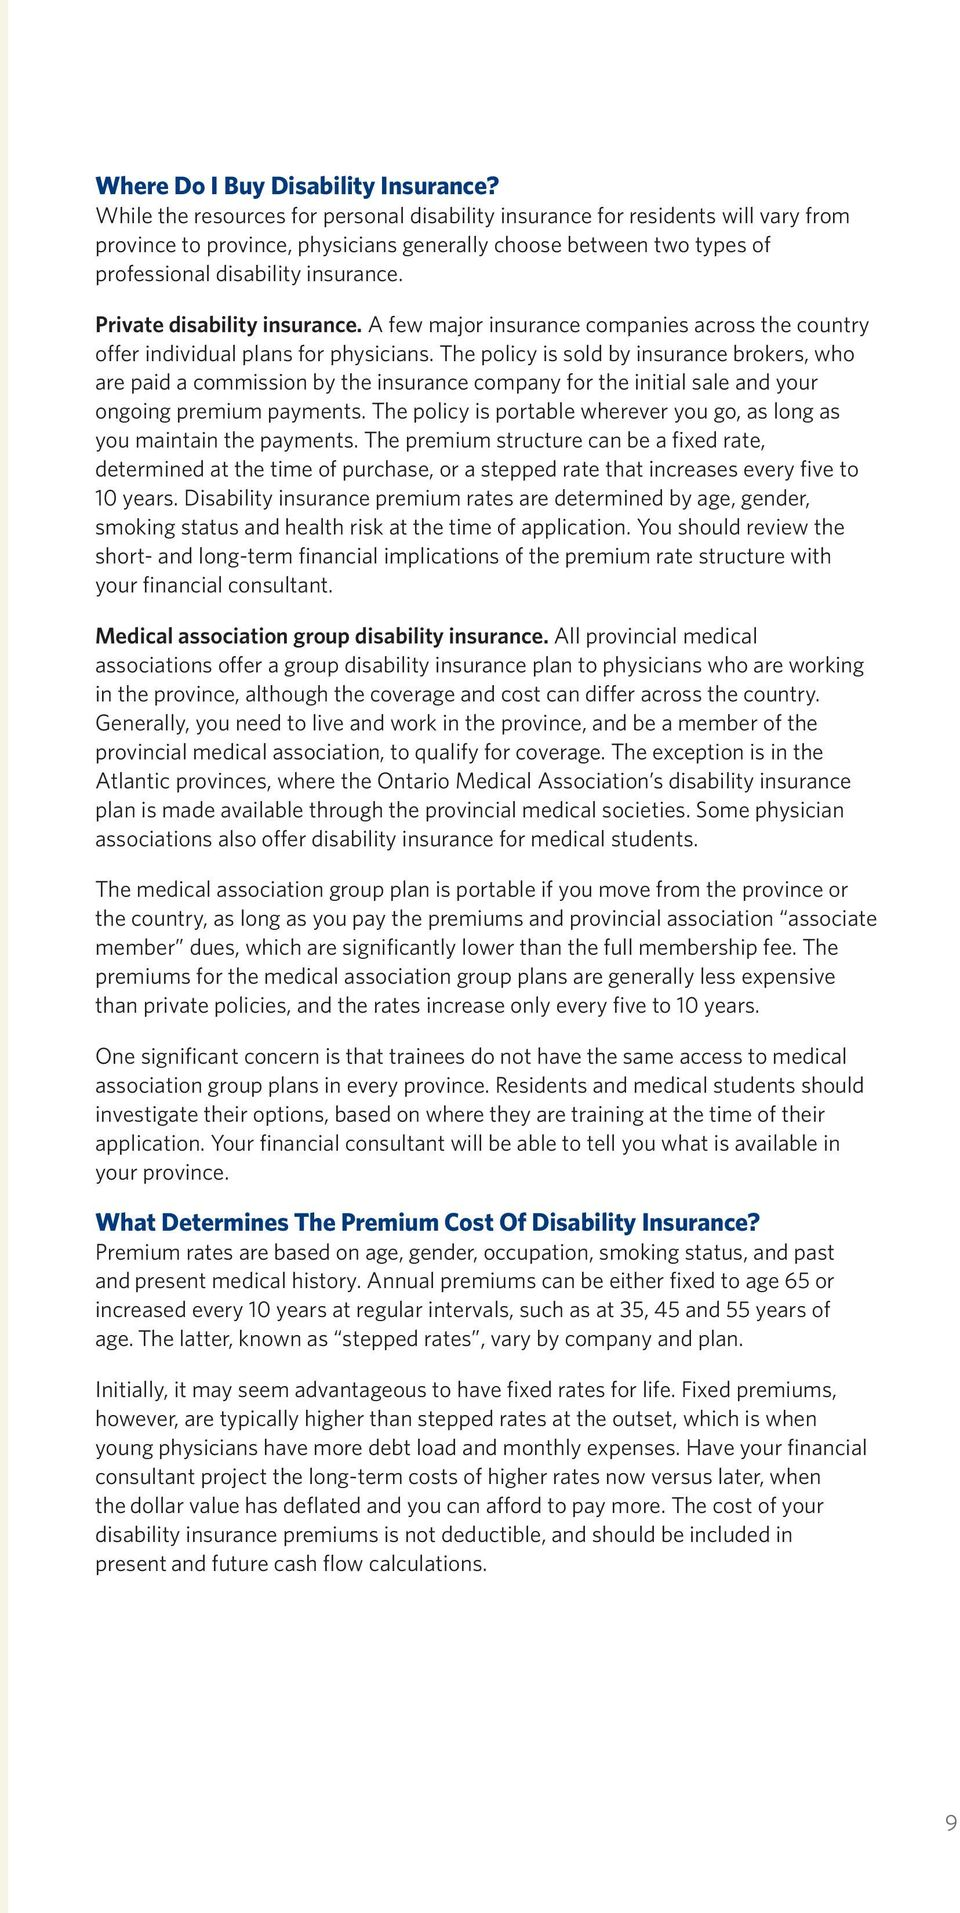 Private disability insurance. A few major insurance companies across the country offer individual plans for physicians.